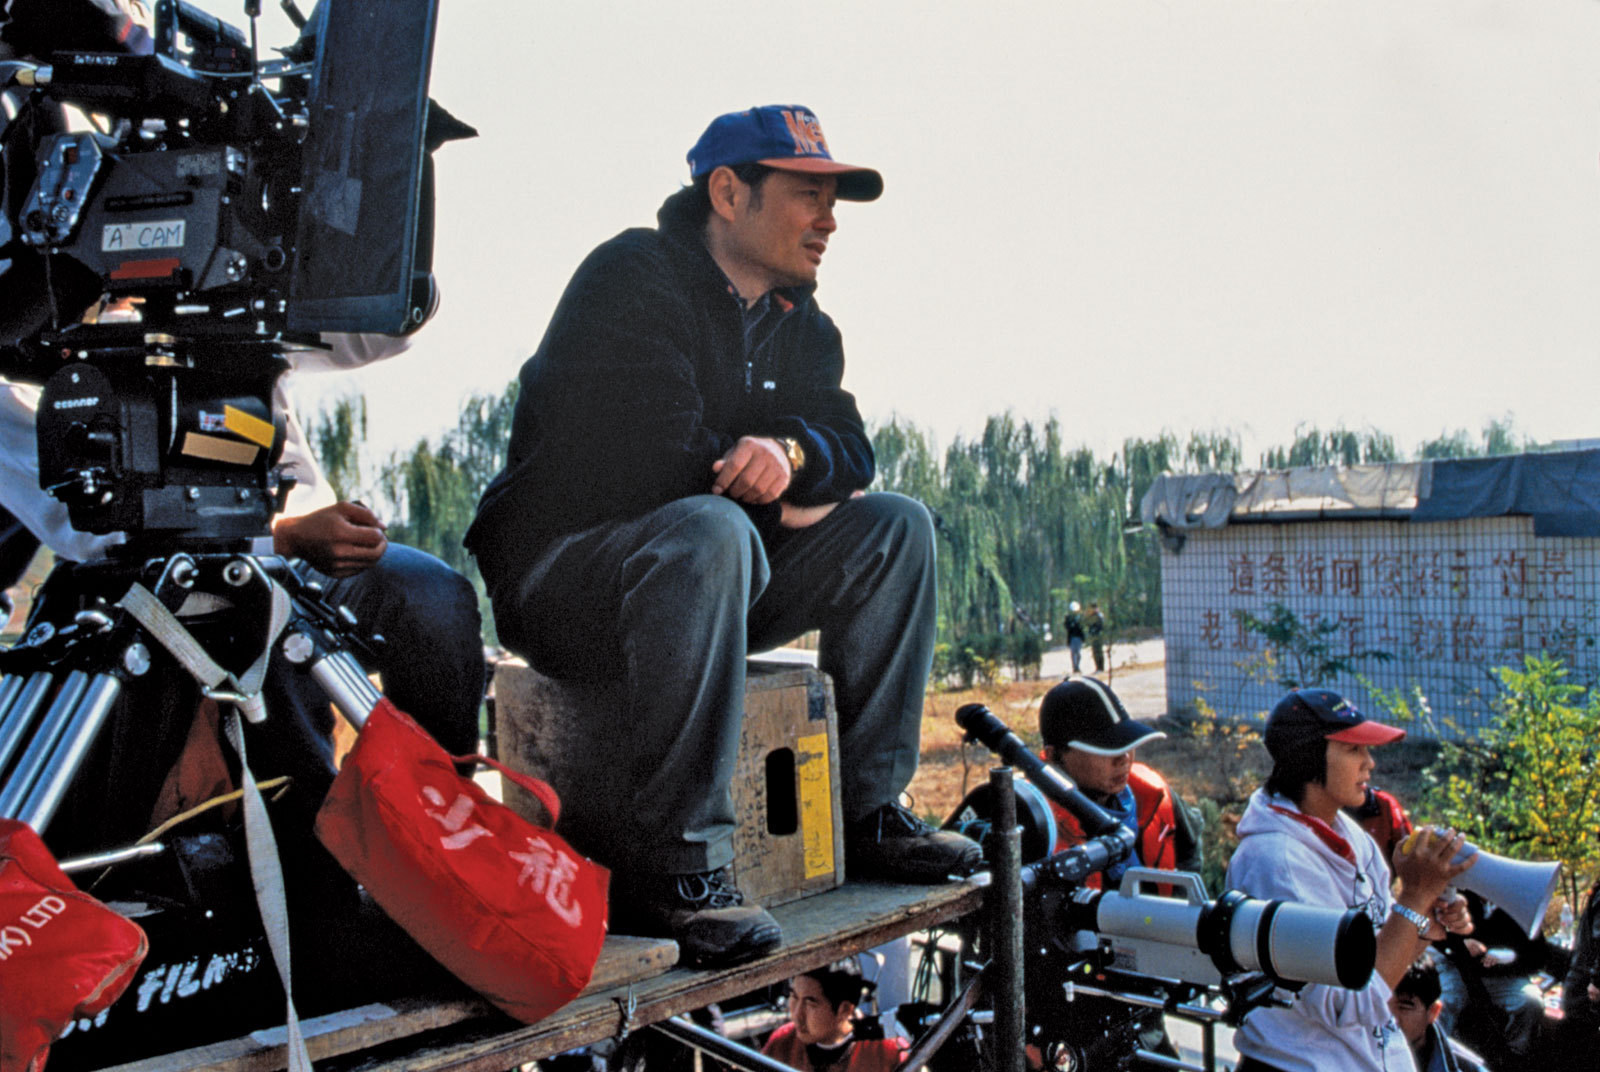 Ang Lee on the Set Behind the Scenes